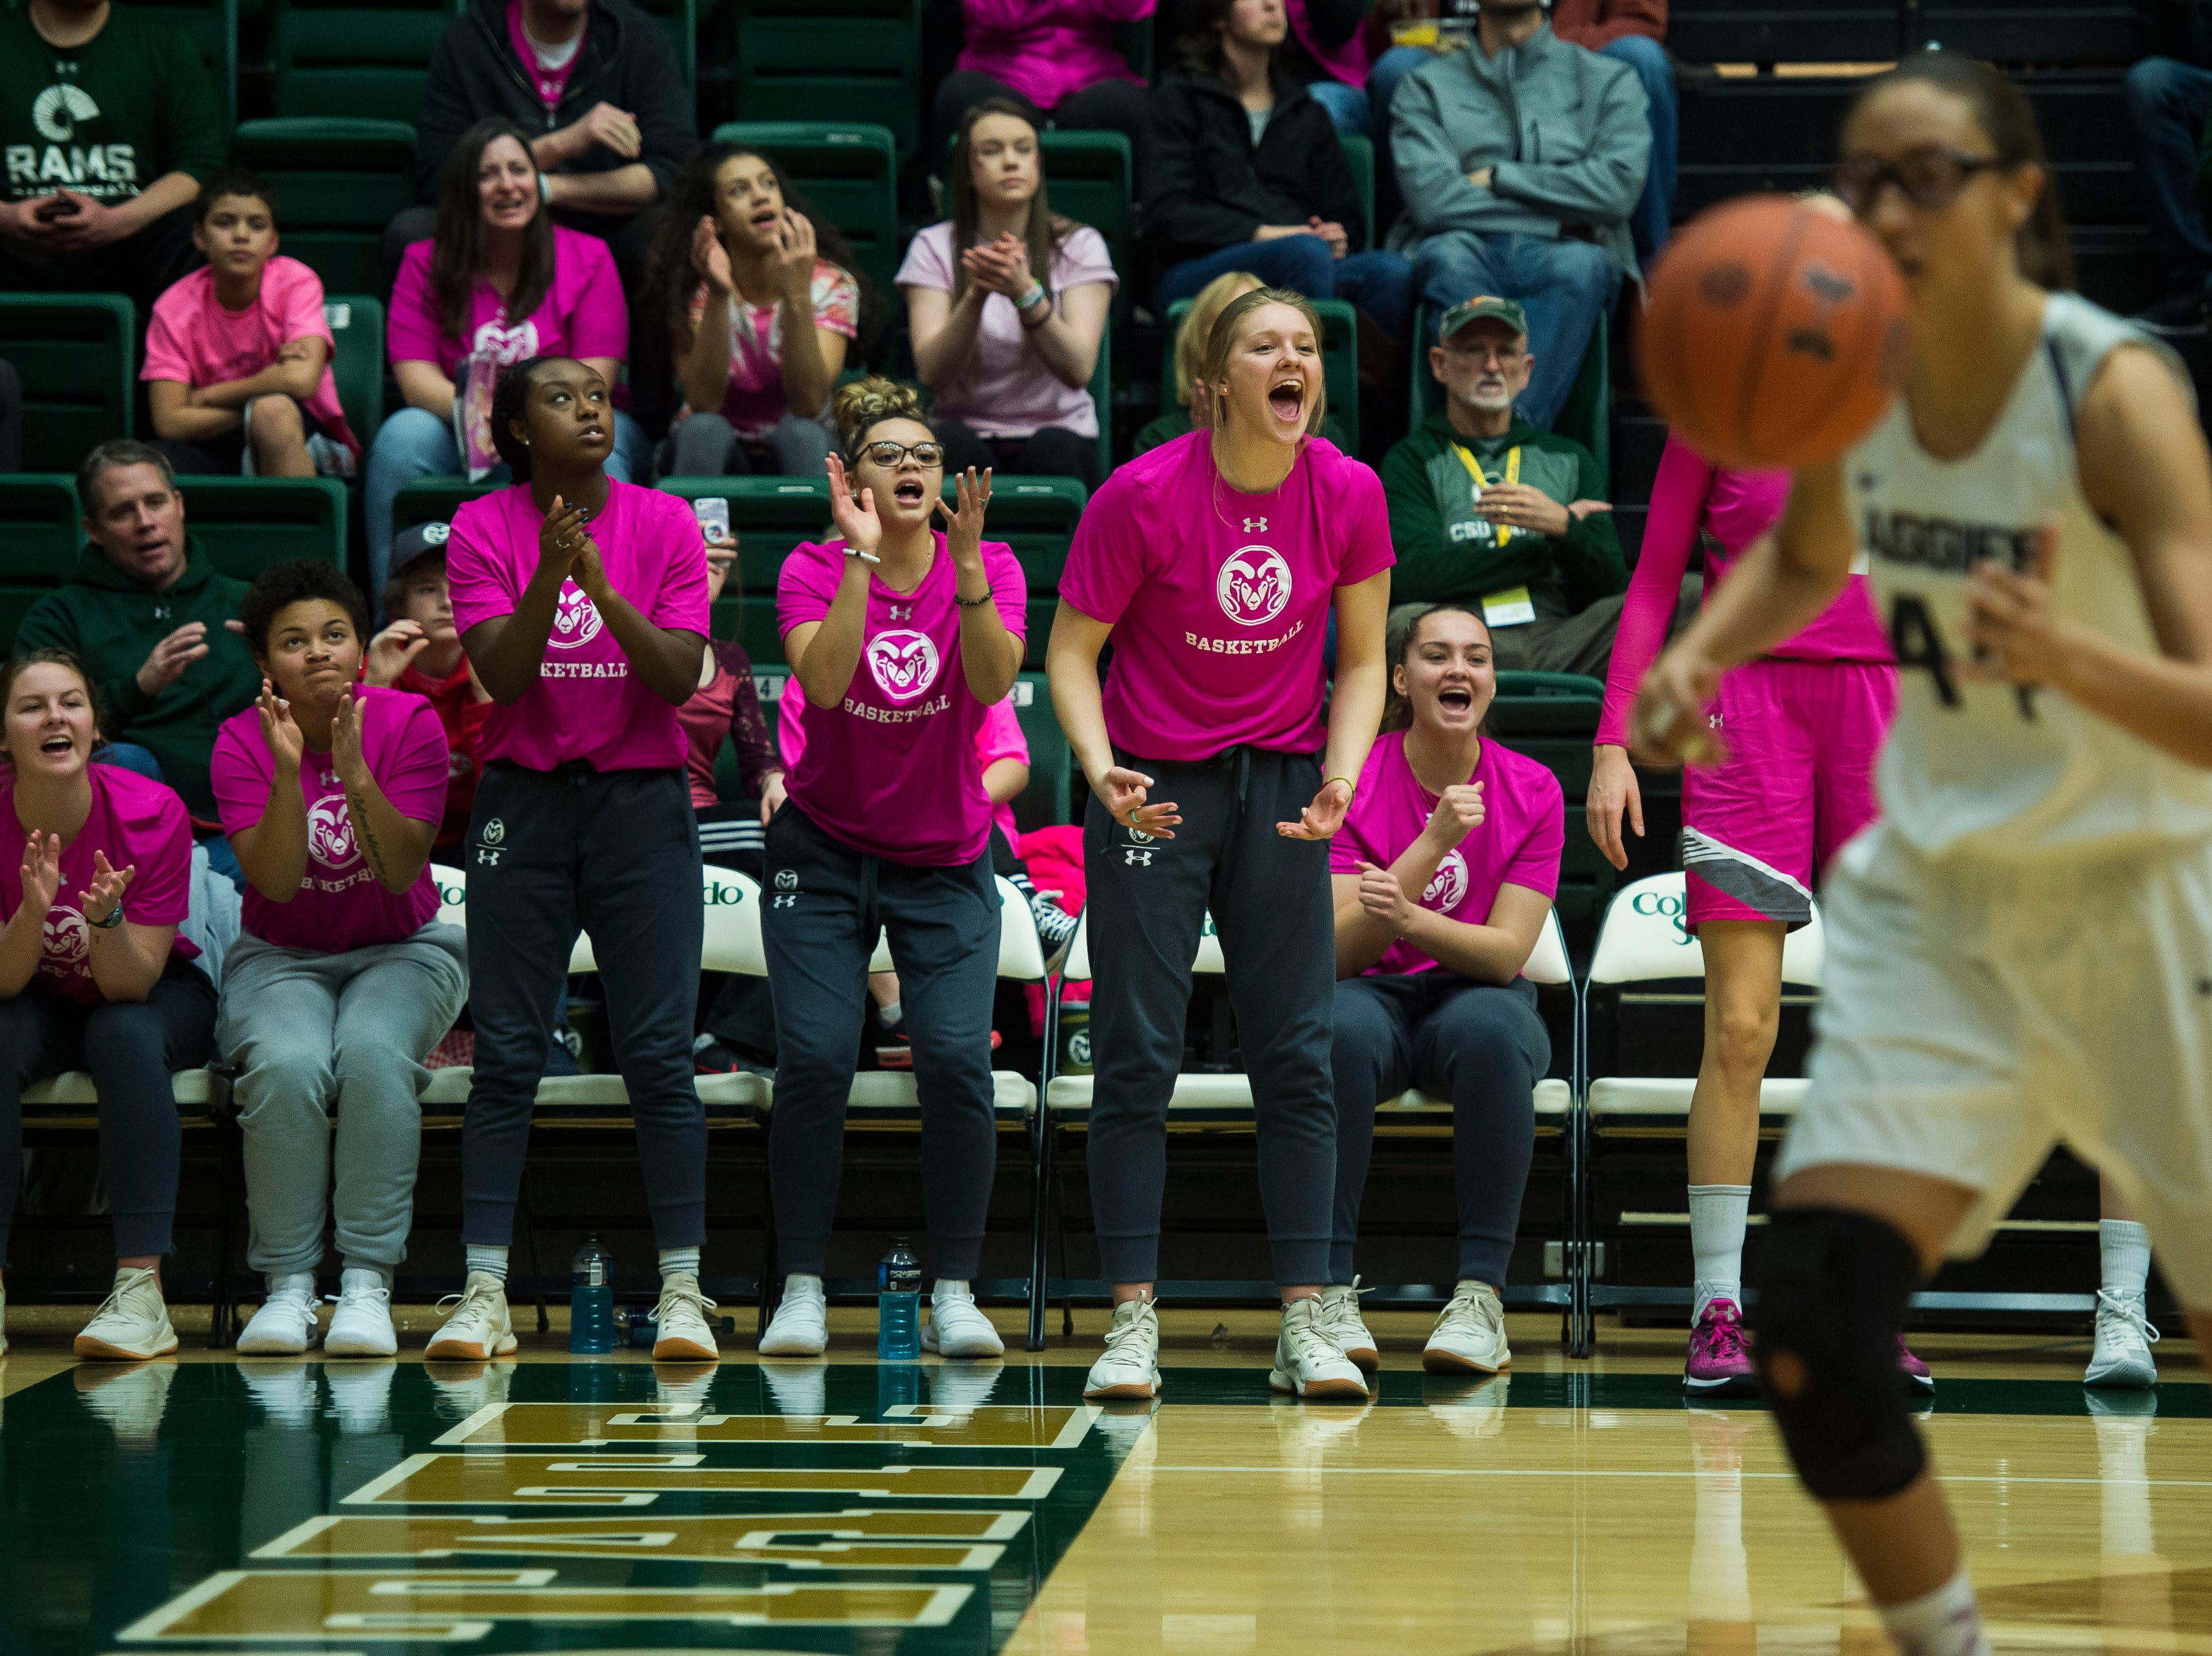 Recent Colorado State University transfers cheer their team on during a game against Utah State on Saturday, Jan. 19, 2019, at Moby Arena in Fort Collins, Colo.